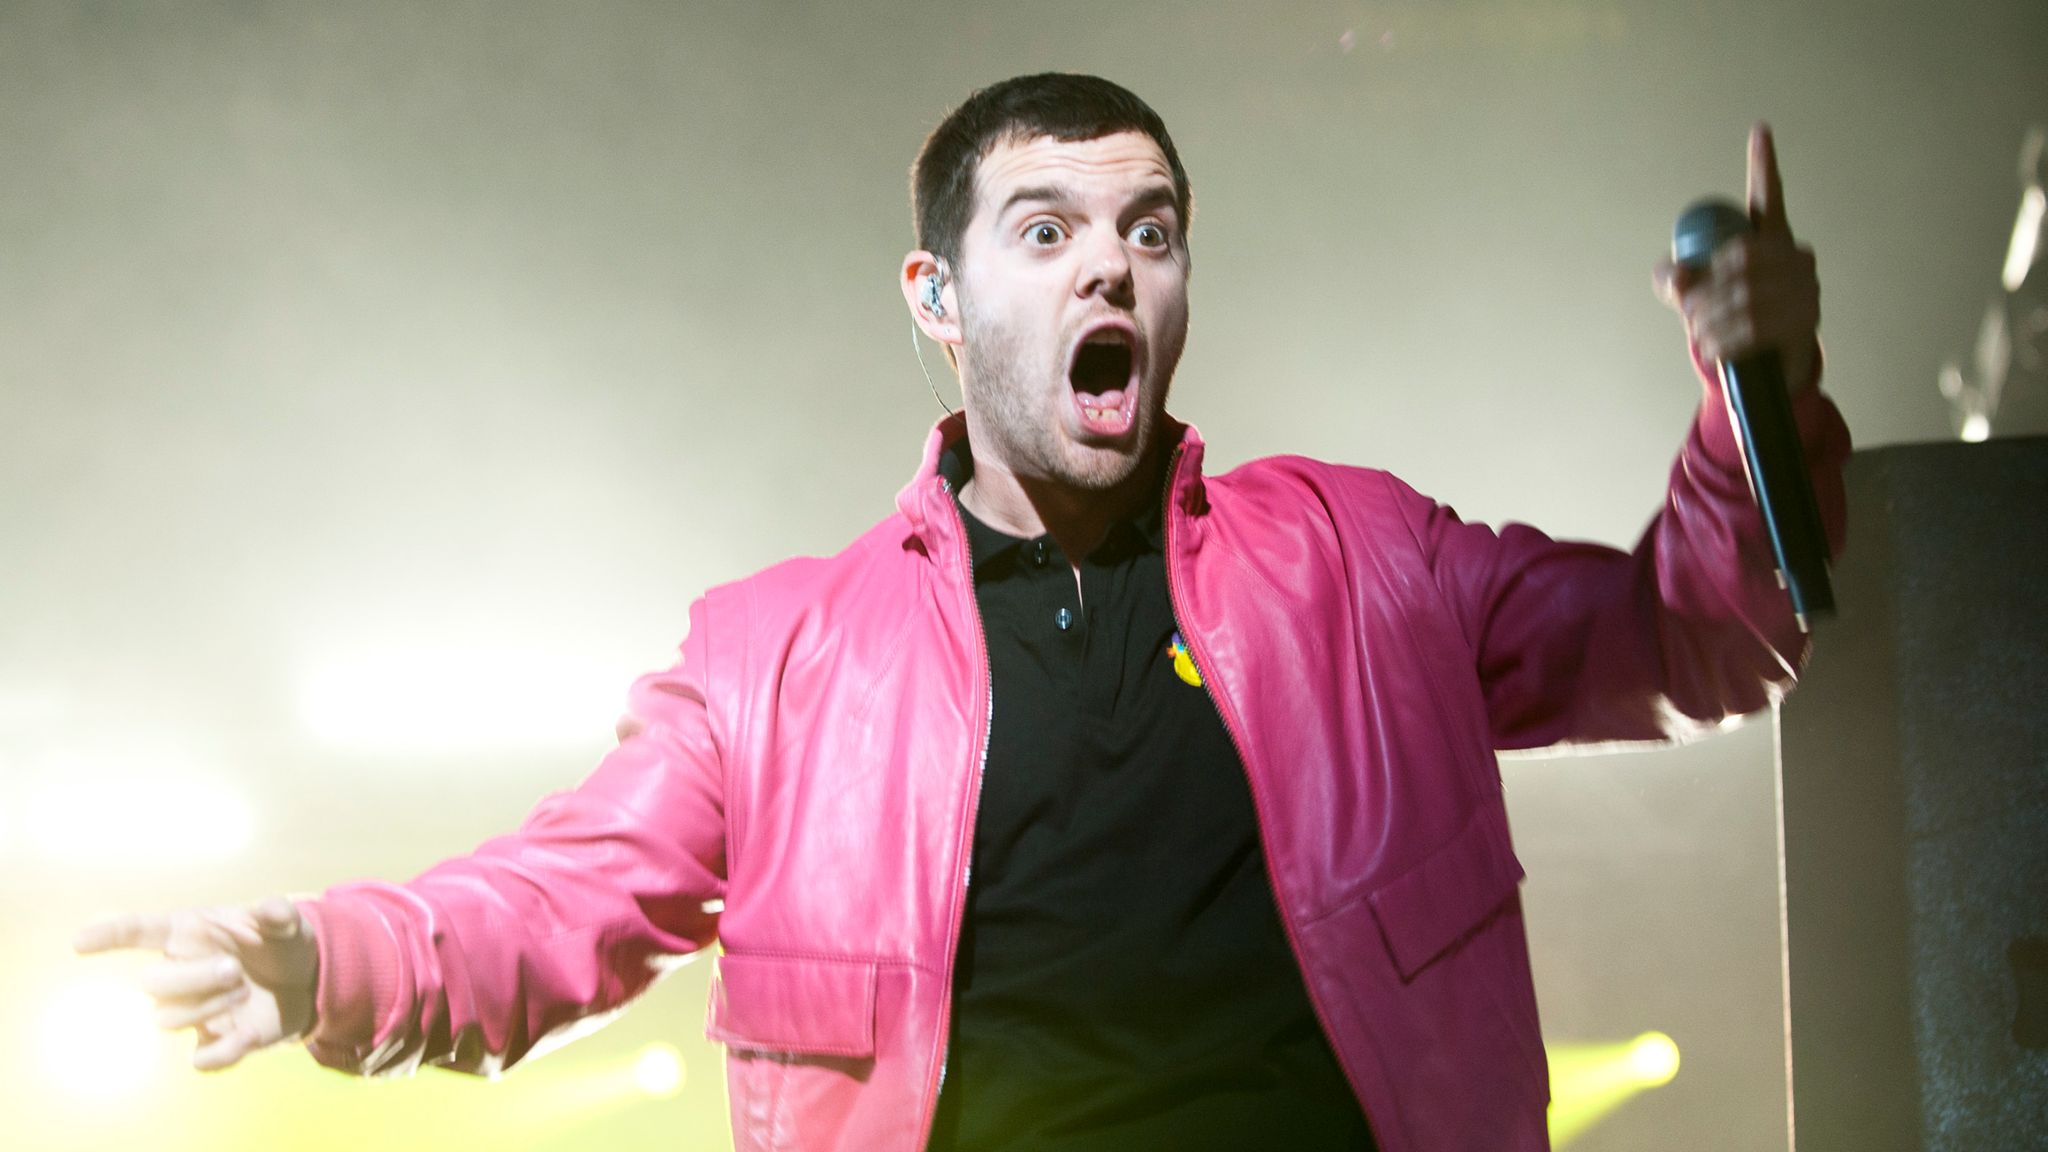 Mike Skinner, The Streets, in 2011